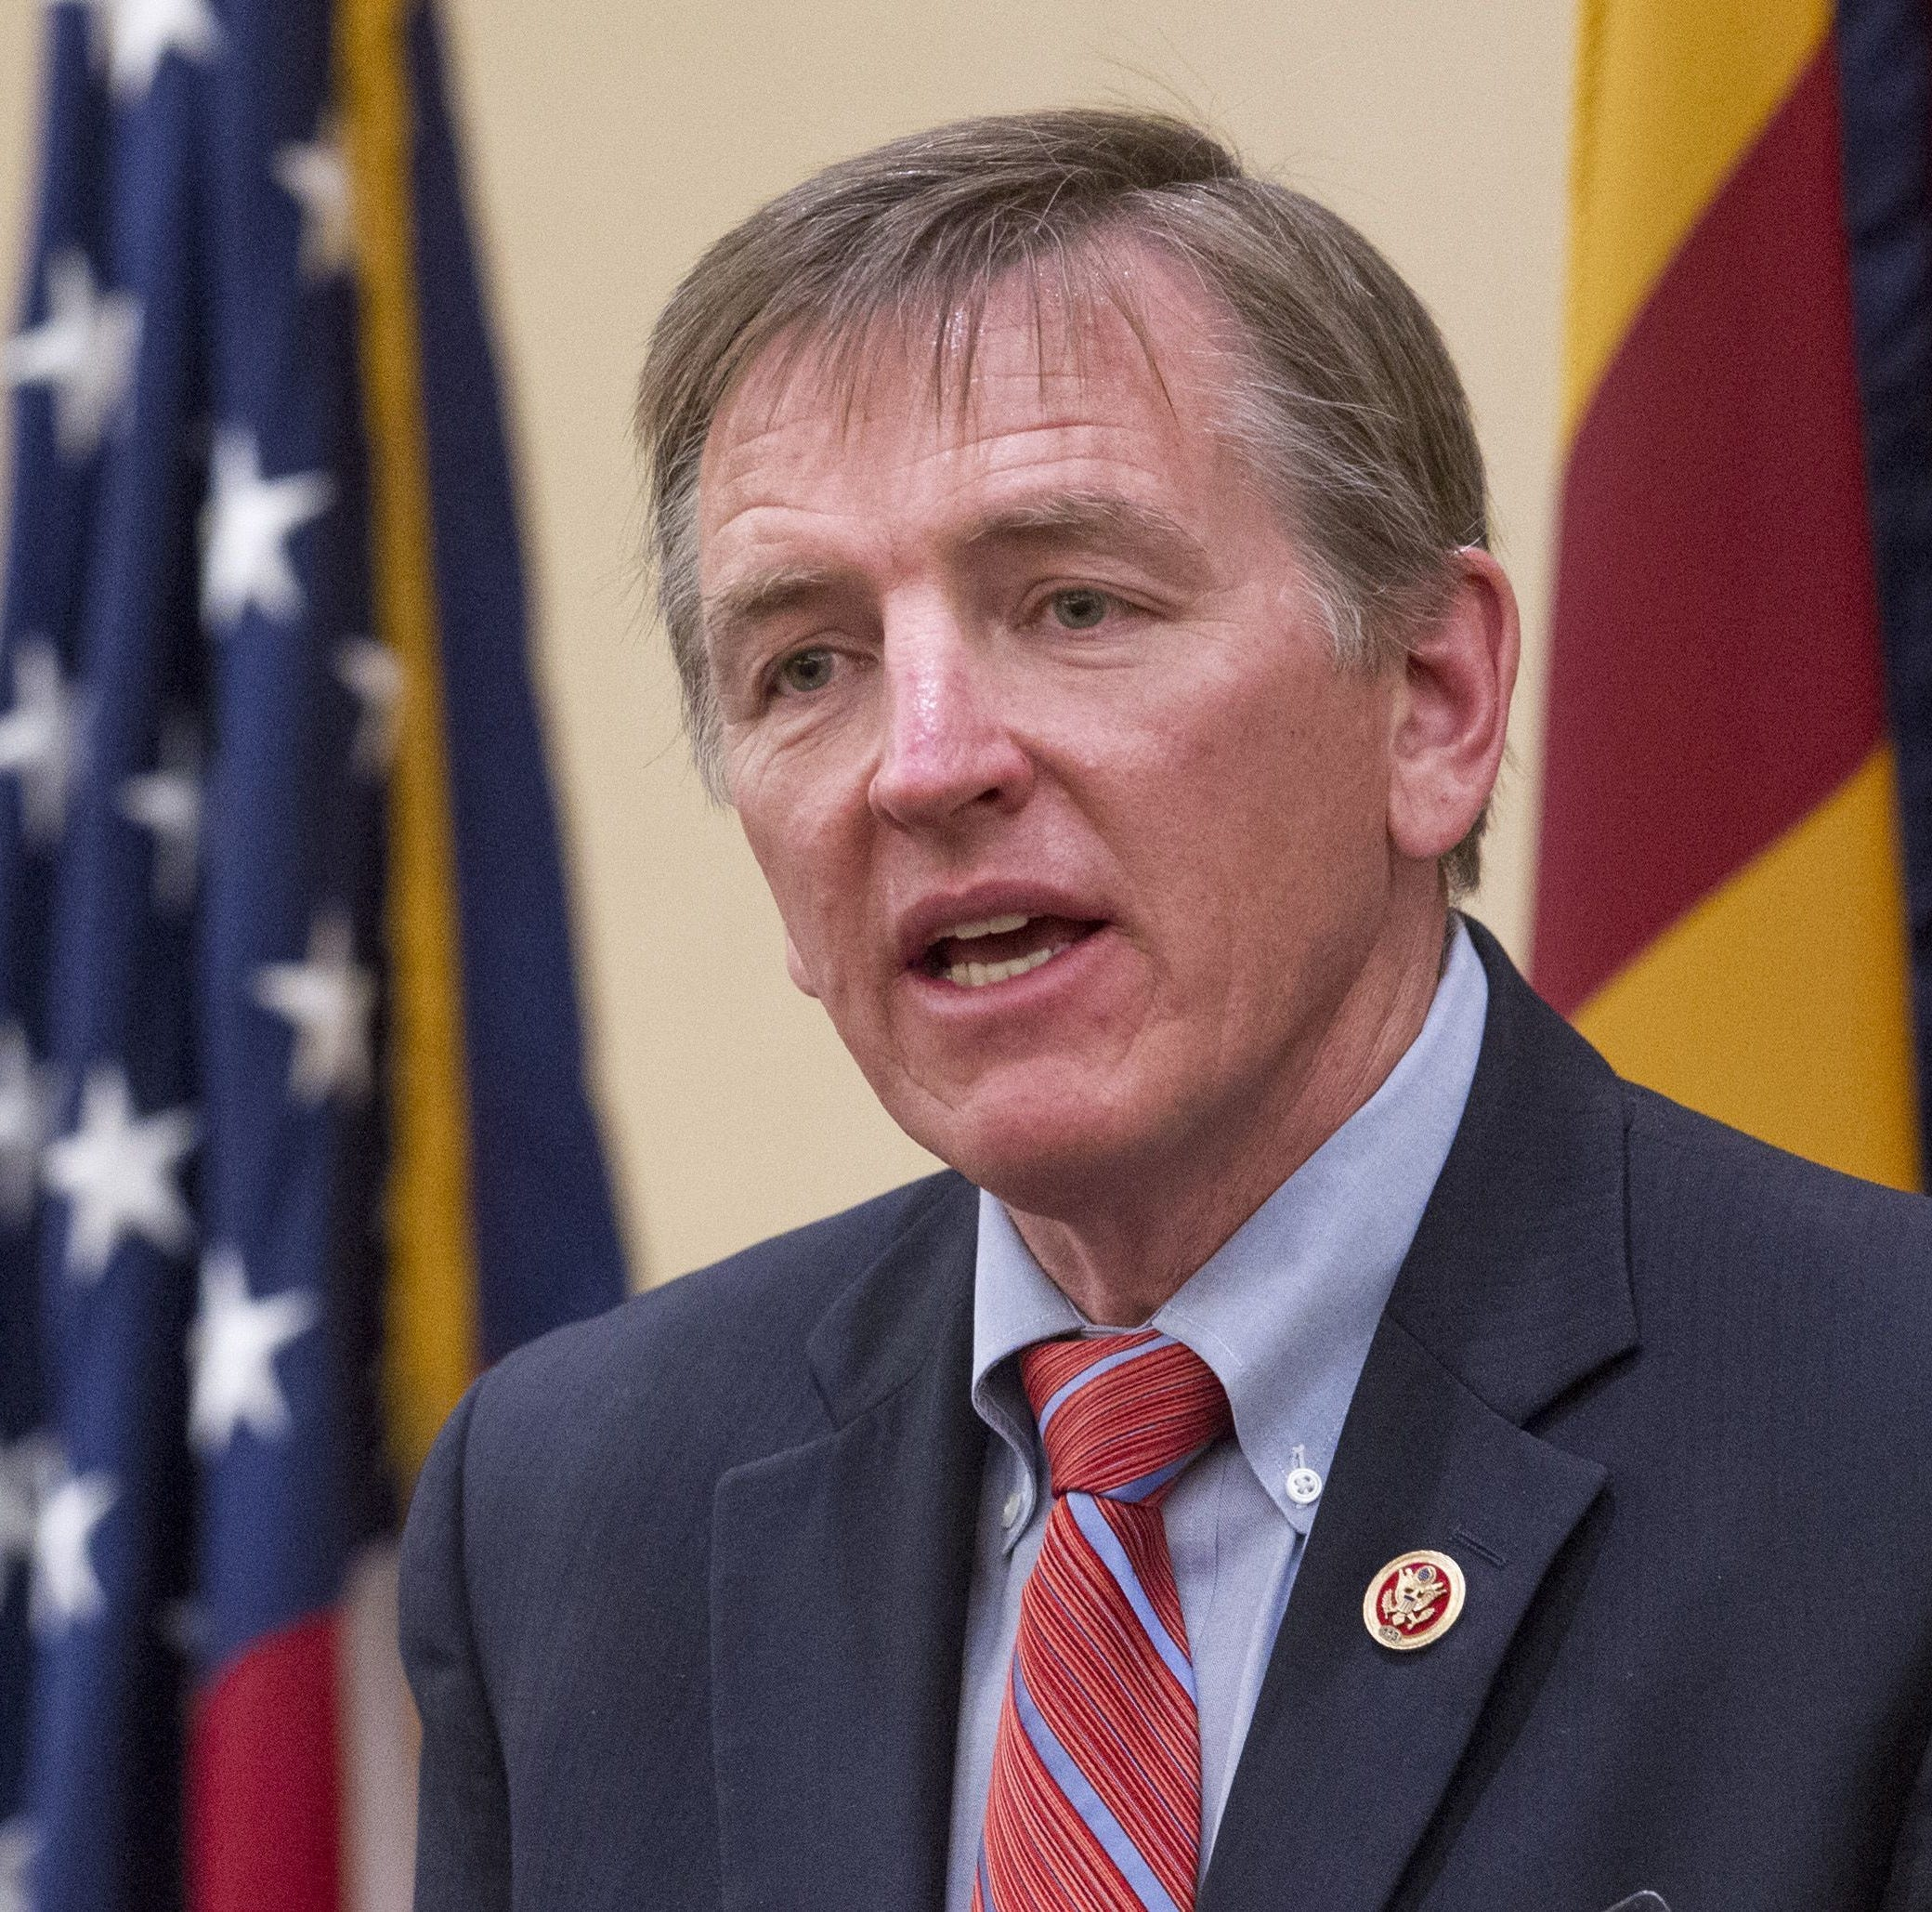 As Mueller report tensions rise, Rep. Paul Gosar attacks FBI, CIA